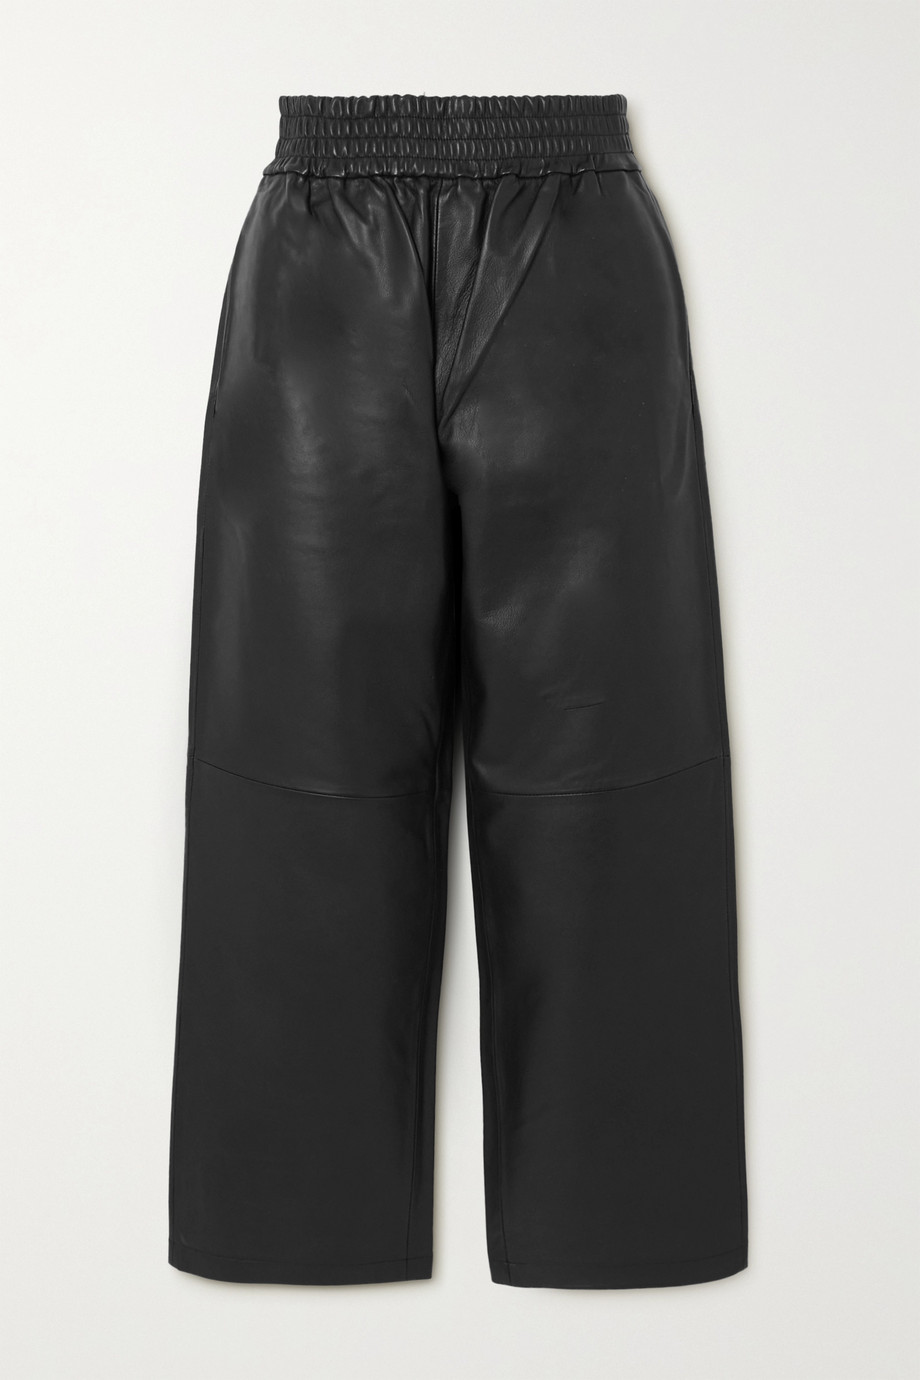 BY MALENE BIRGER Mizonia leather wide-leg pants